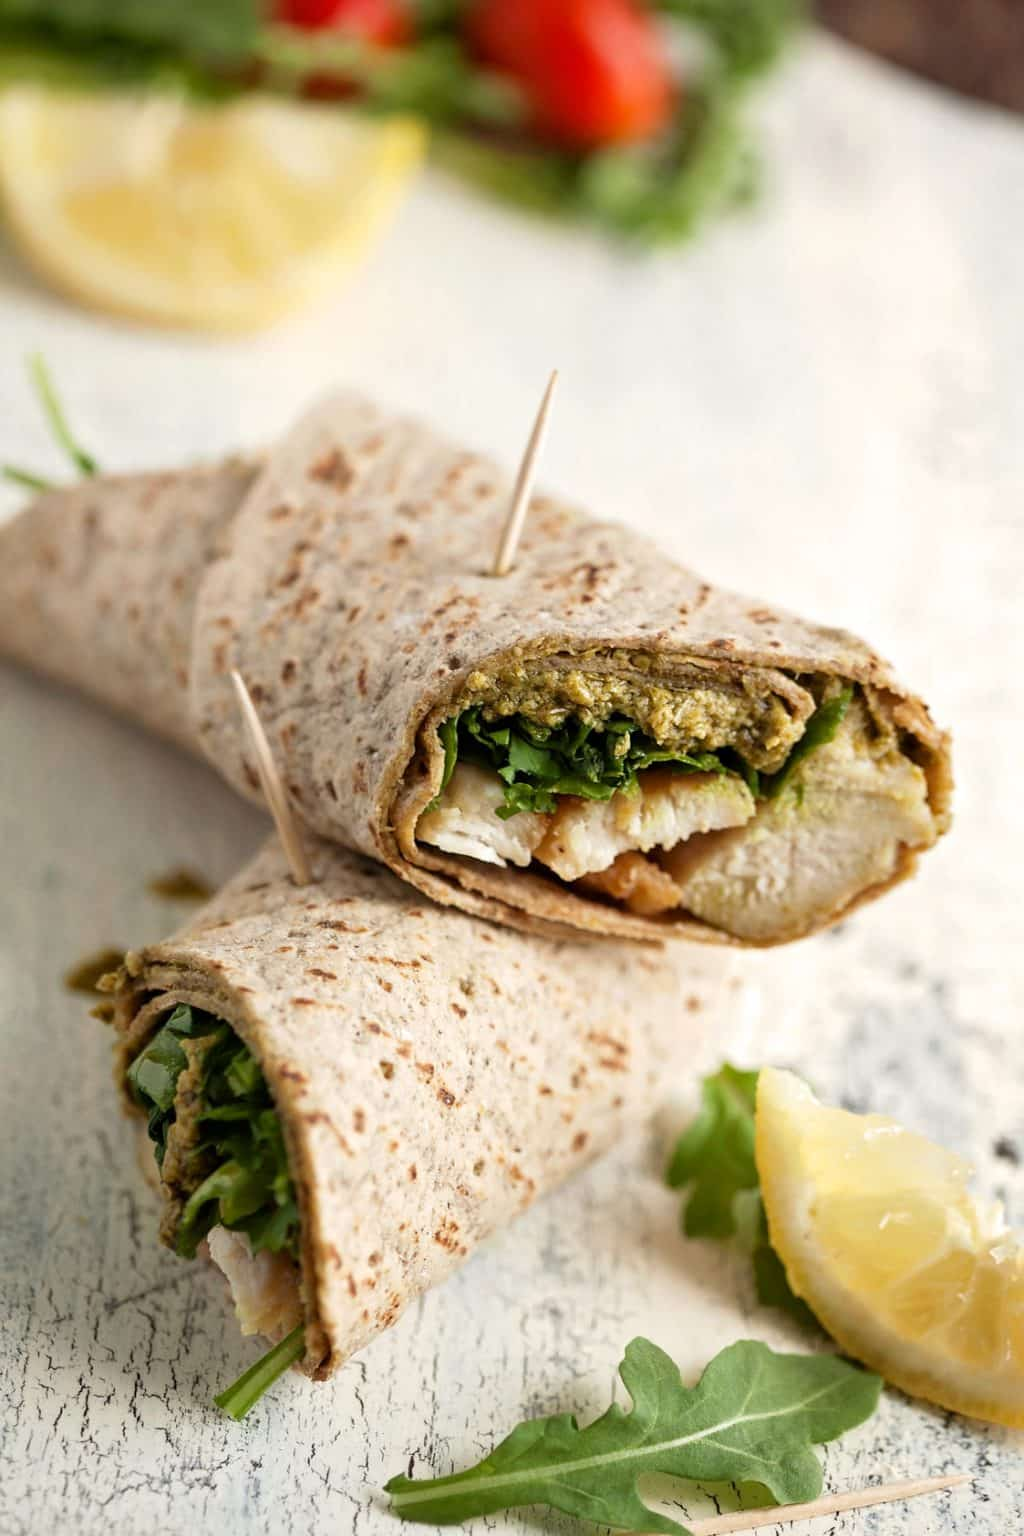 Light and healthy chicken pesto wraps are FAST and bring balance to those days when you had 3 donuts and a Mountain Dew.